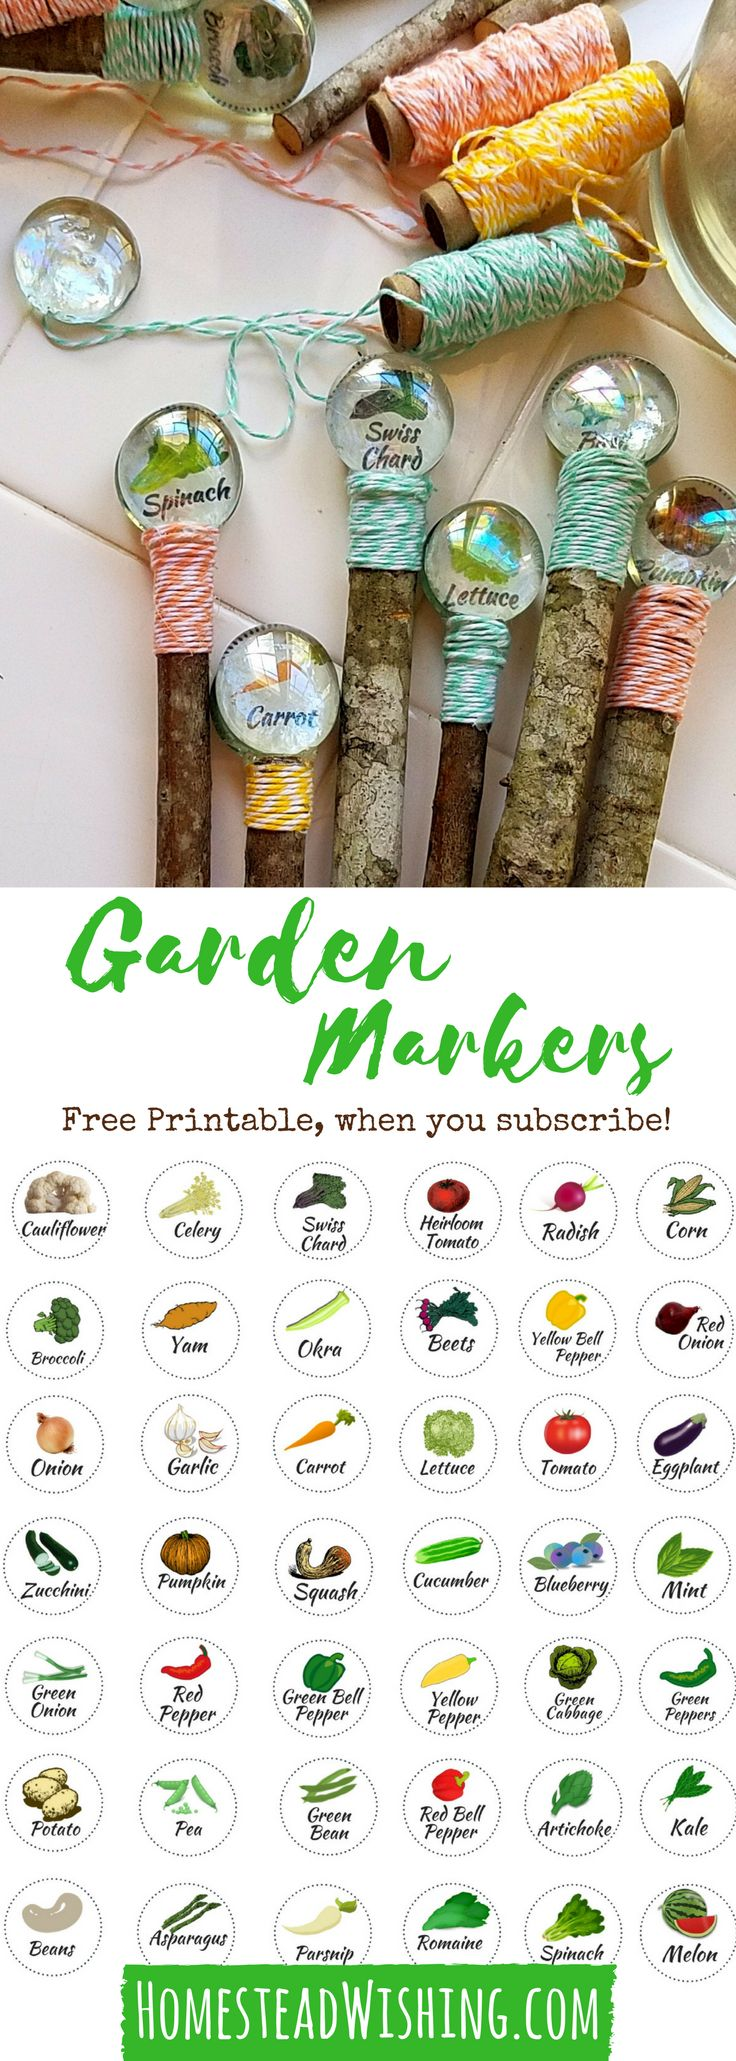 DIY Garden Markers - Free Printable Garden Markers - Cheap Garden Markers - Glass Gem Garden Markers - Garden Marker Tutorial | Homestead Wishing, Author Kristi Wheeler | homesteadwishing.... | diy-garden-markers, cheap-garden-markers